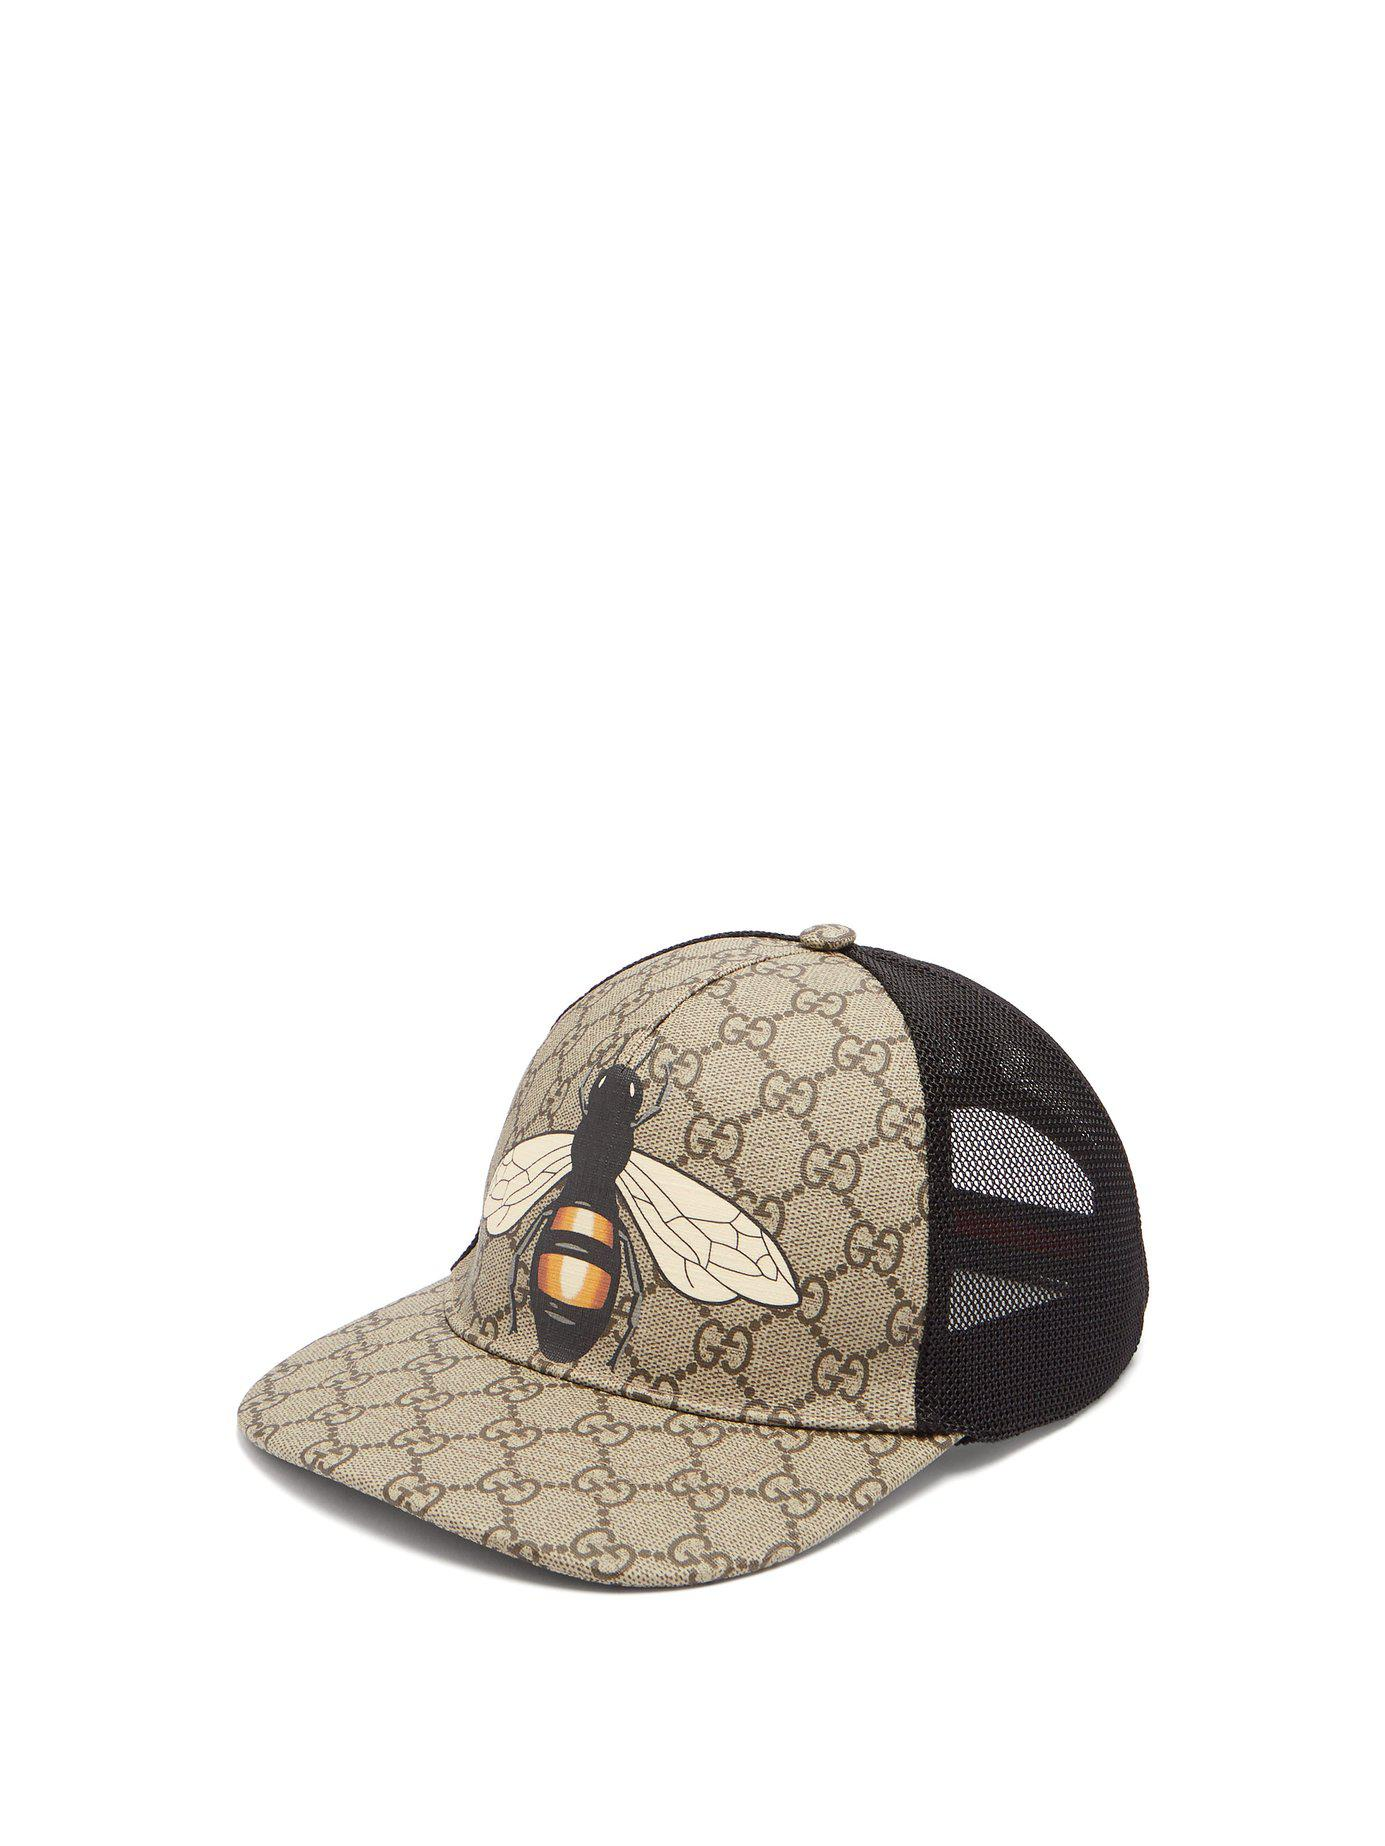 Lyst - Gucci Gg And Bee Print Mesh Hat in Natural for Men 11d9f453ccf8